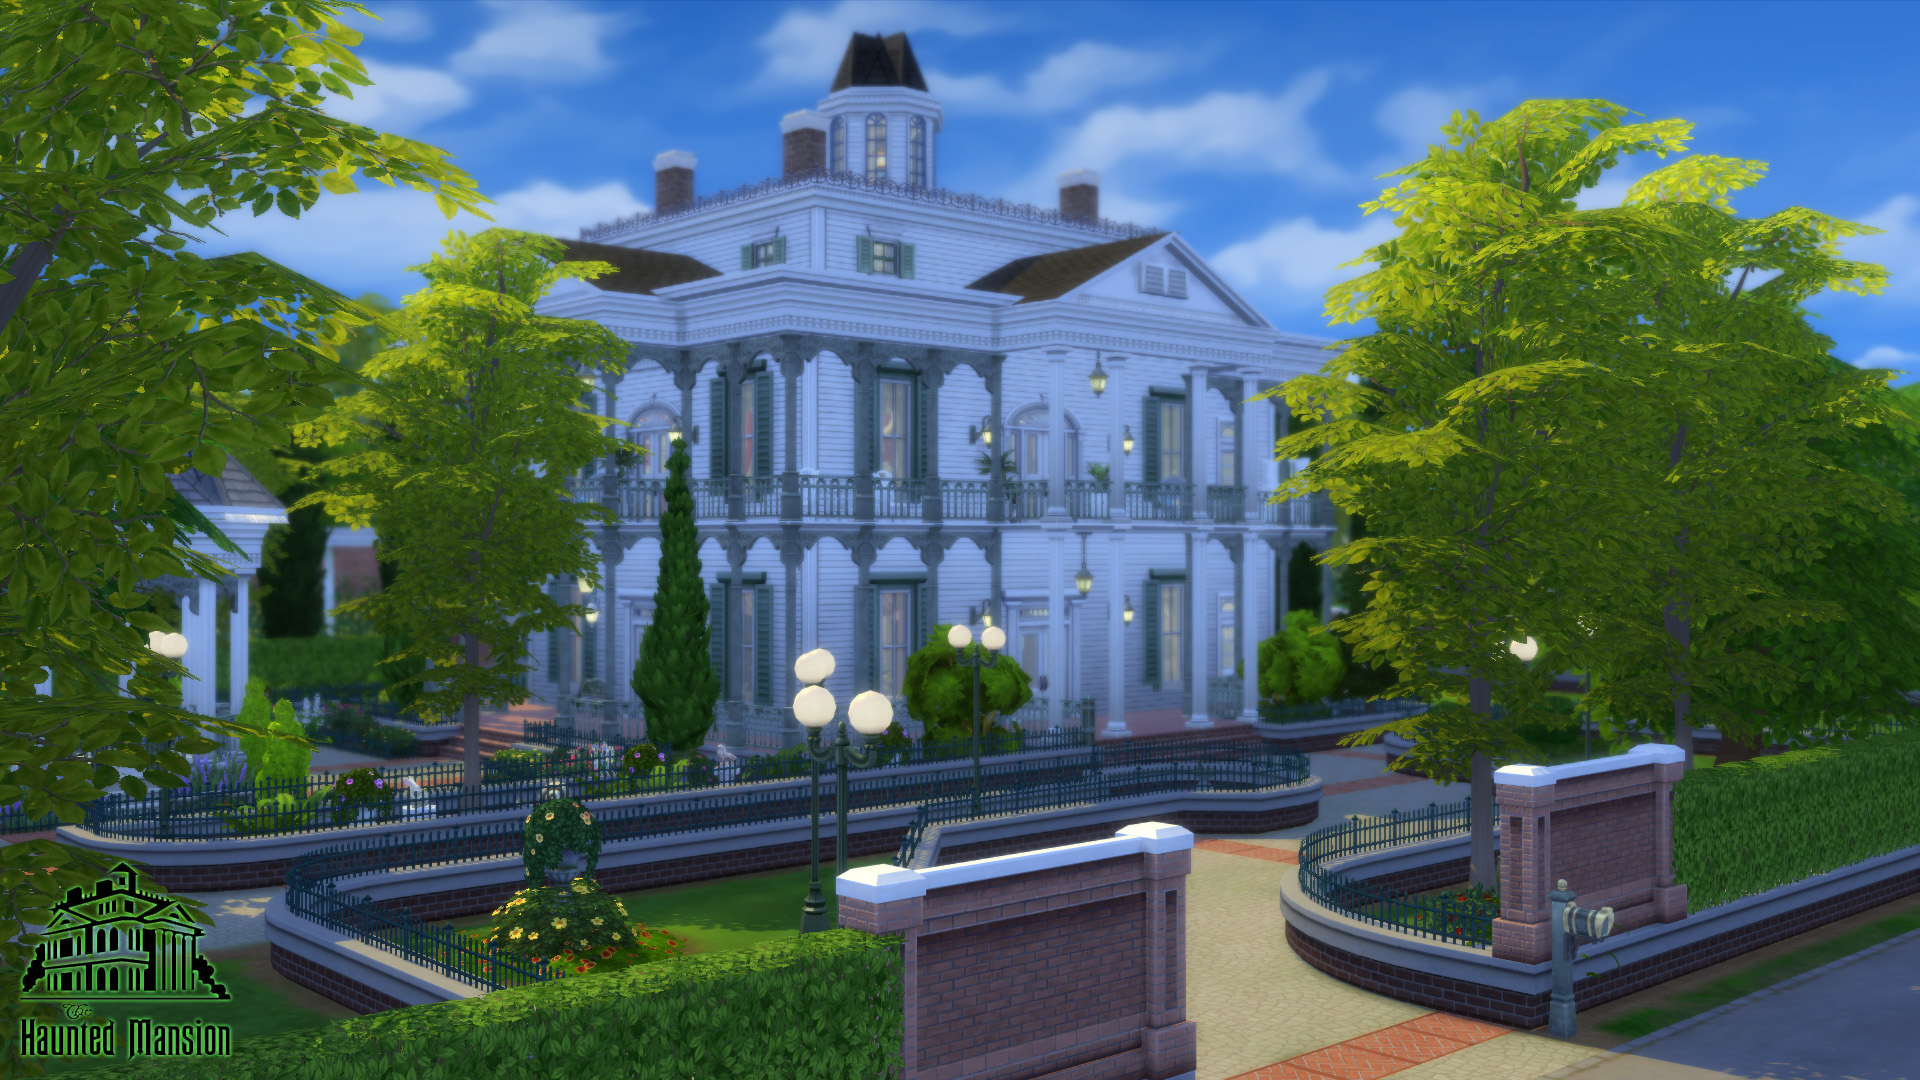 Sims 4 haunted mansion download | sbrizolone's The Haunted